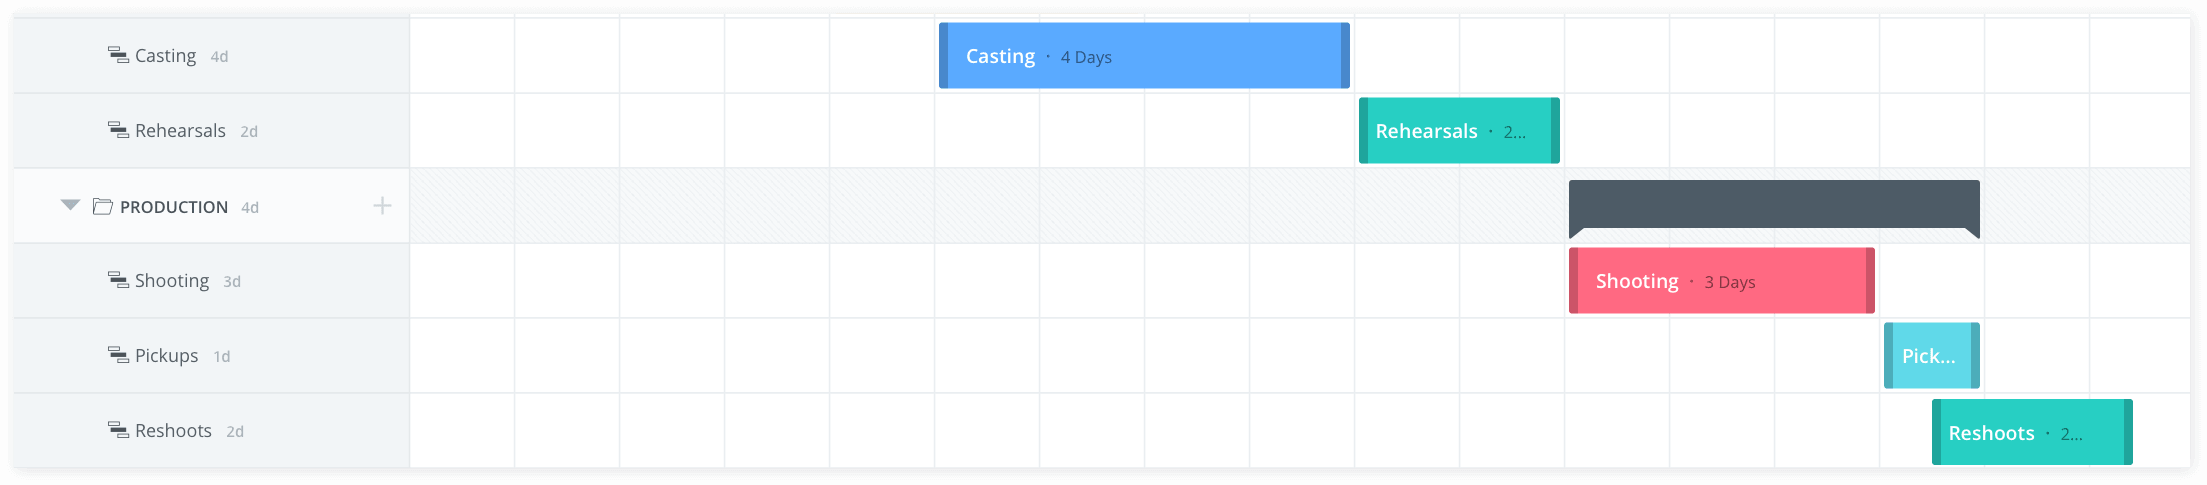 The Ultimate Guide to an Effective Production Calendar - Production Process